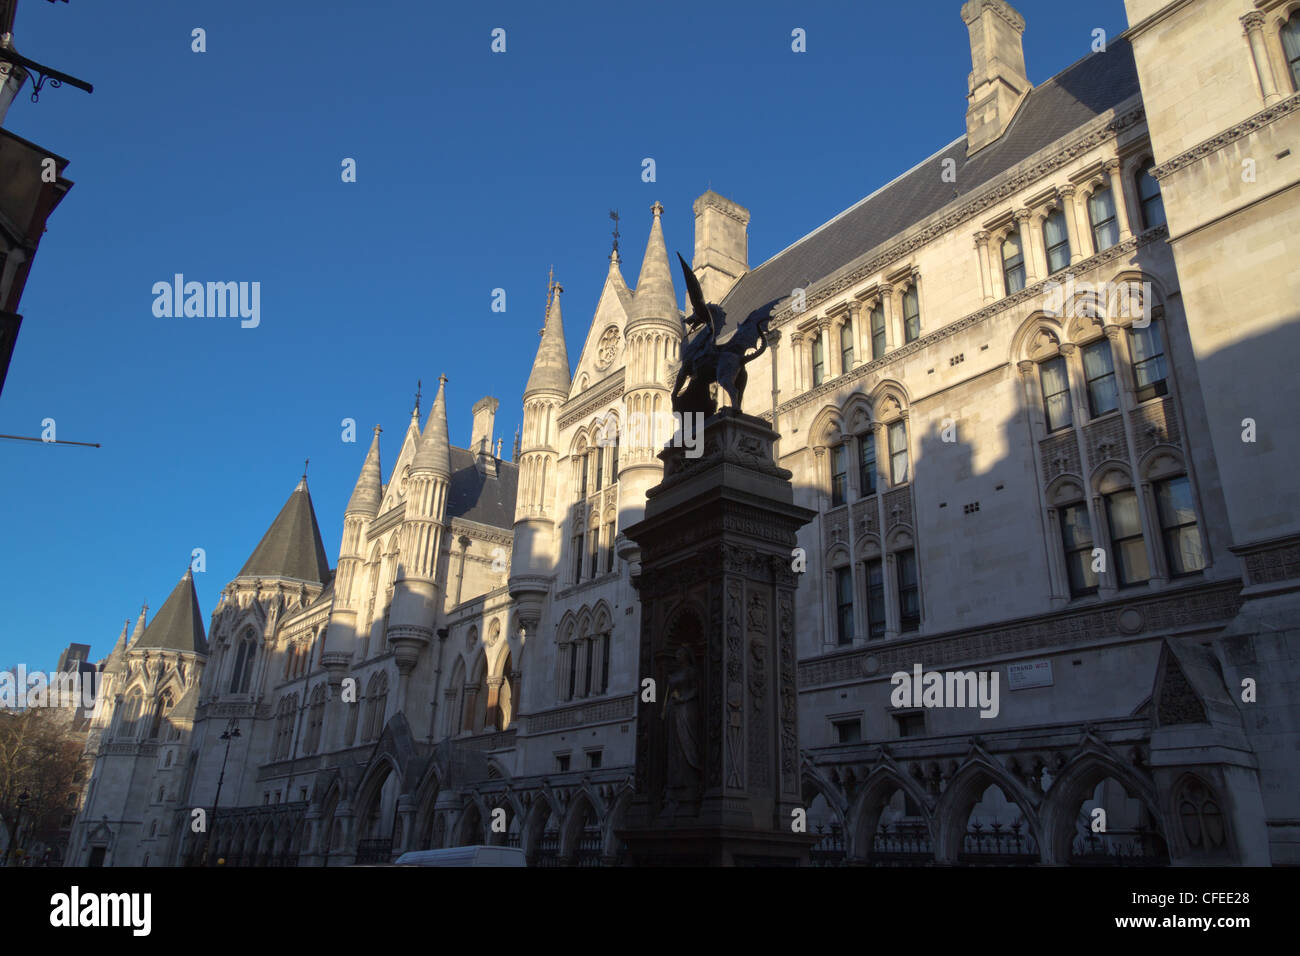 Royal Courts of Justice building, London, UK - Stock Image